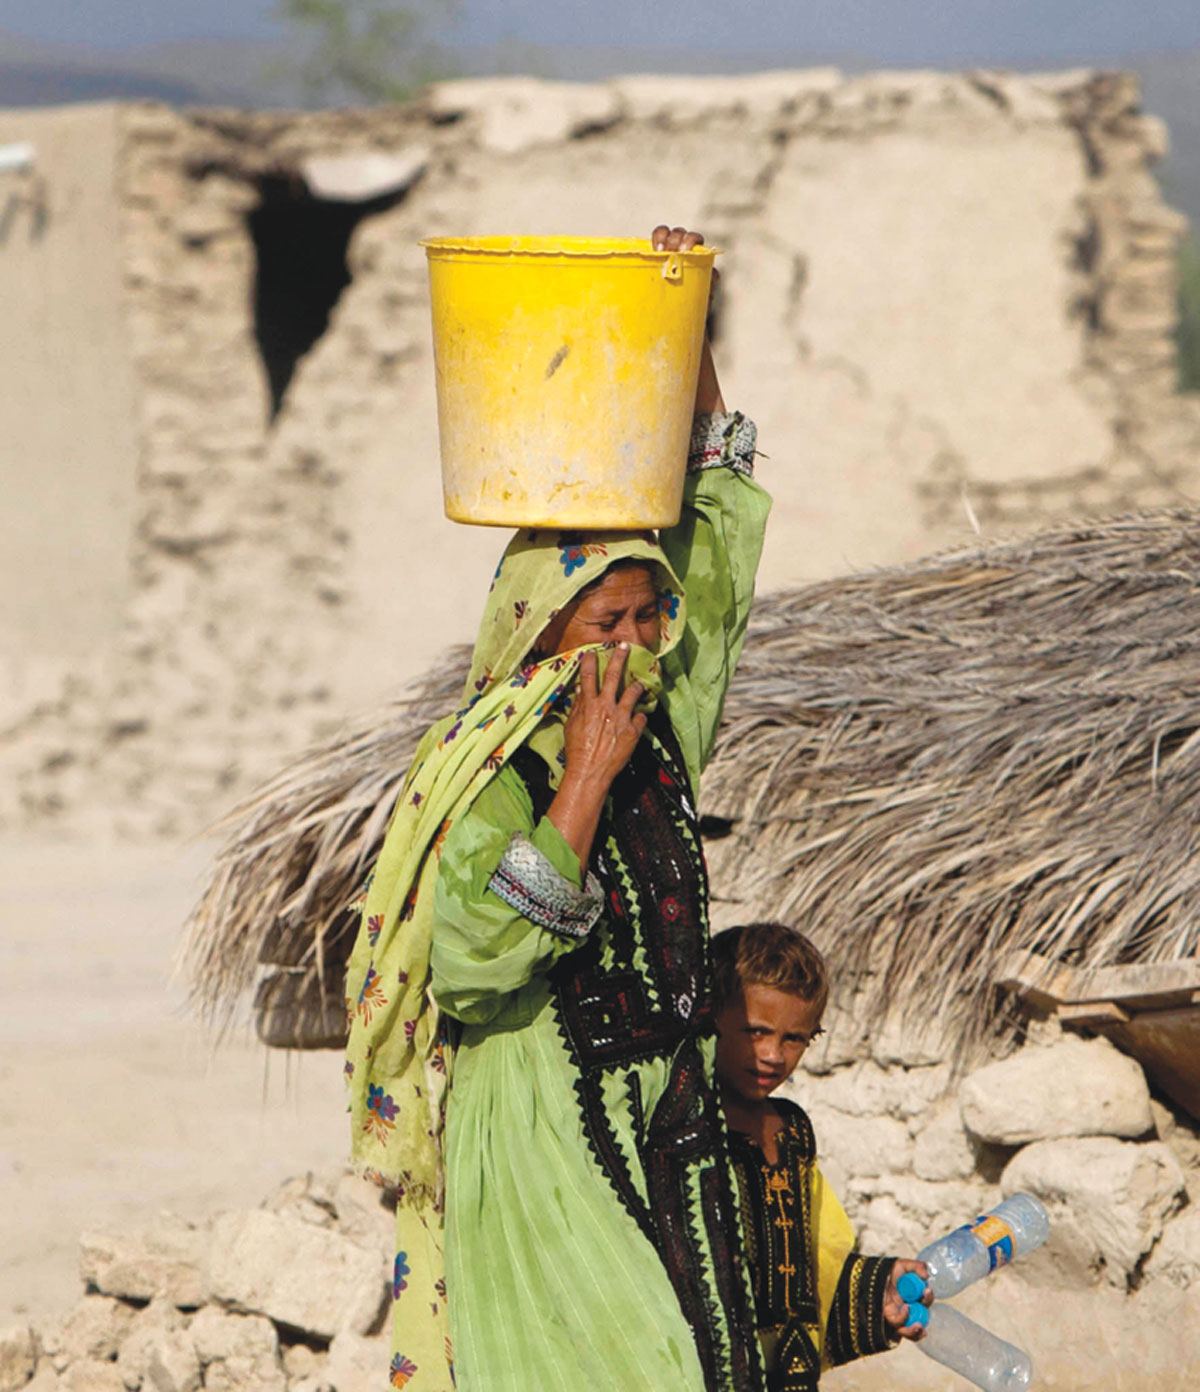 Dozens of natural springs, the only potable water source for local residents, disappeared after the quake, creating an acute water shortage.-Photos by ISPR and White Star